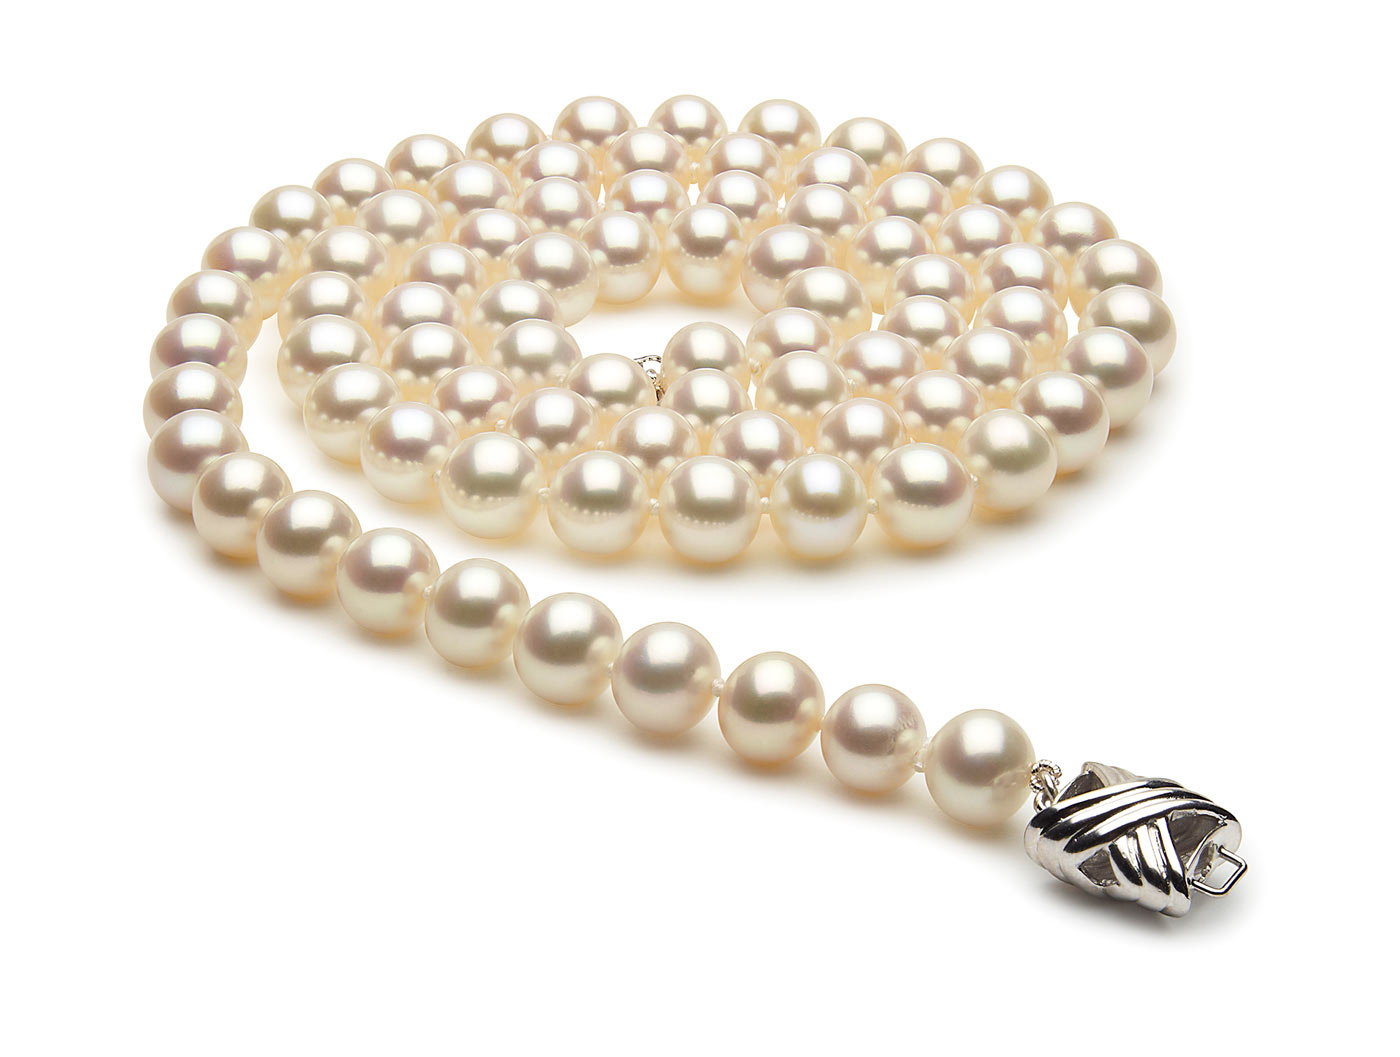 28 Inch 7.5mm x 8mm Freshwater Cultured Pearl Necklace